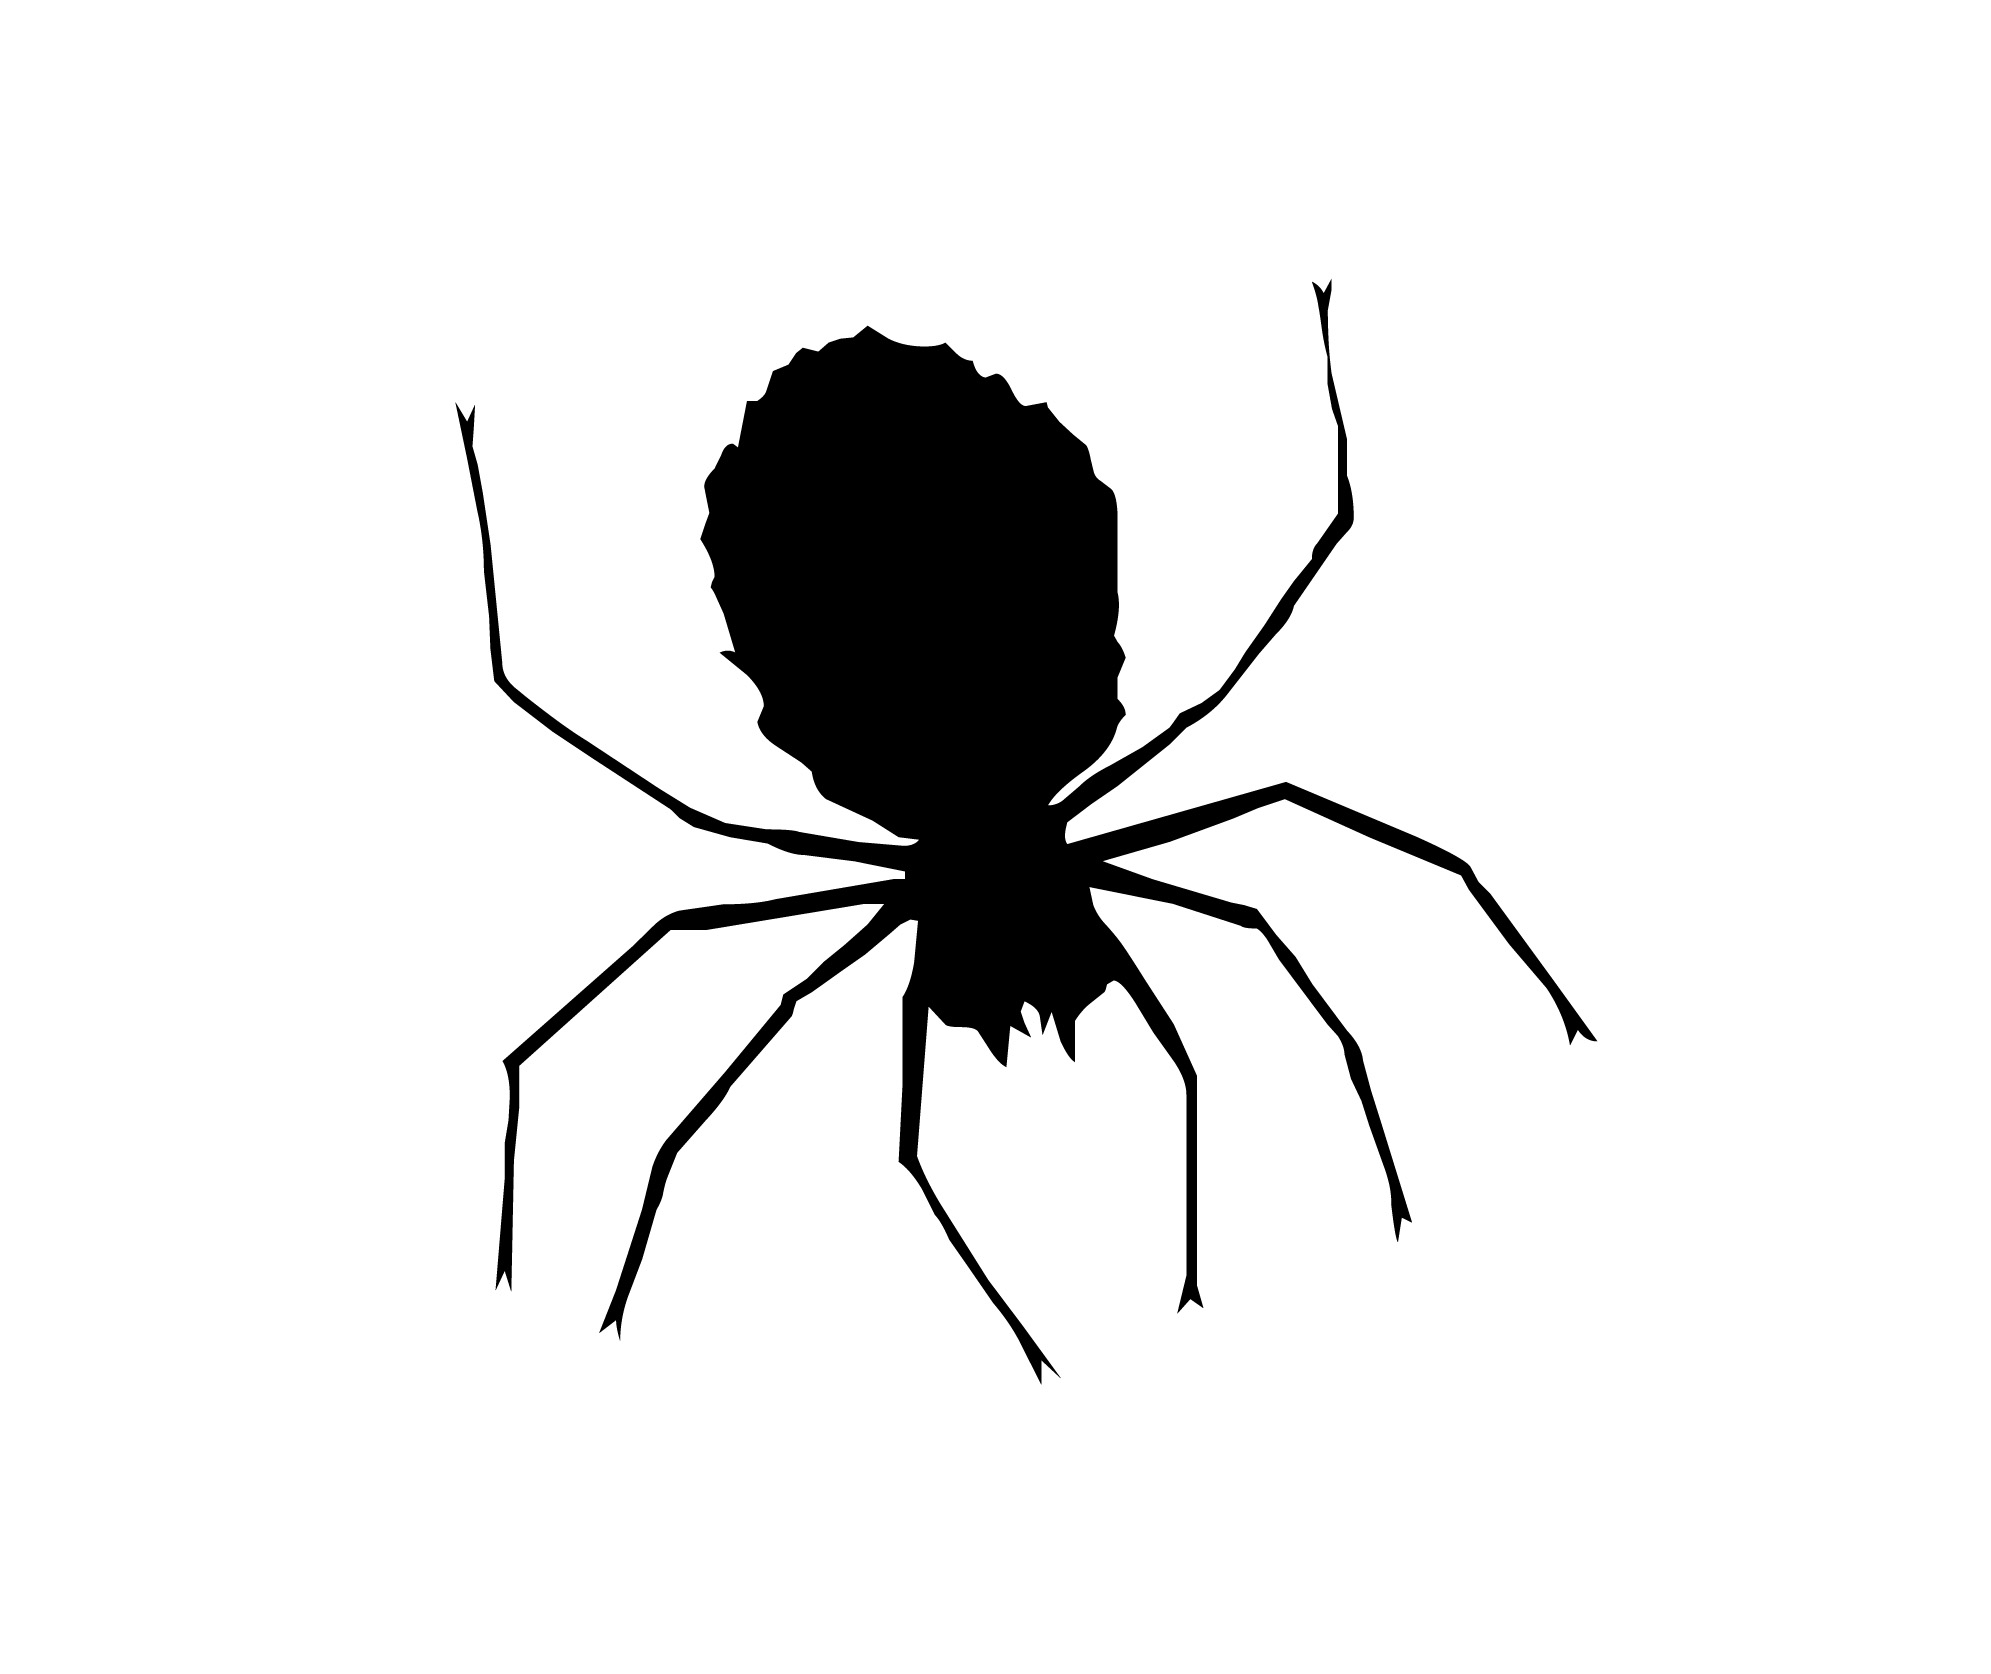 Drawn spider aqua White Free spider%20clipart Panda Images